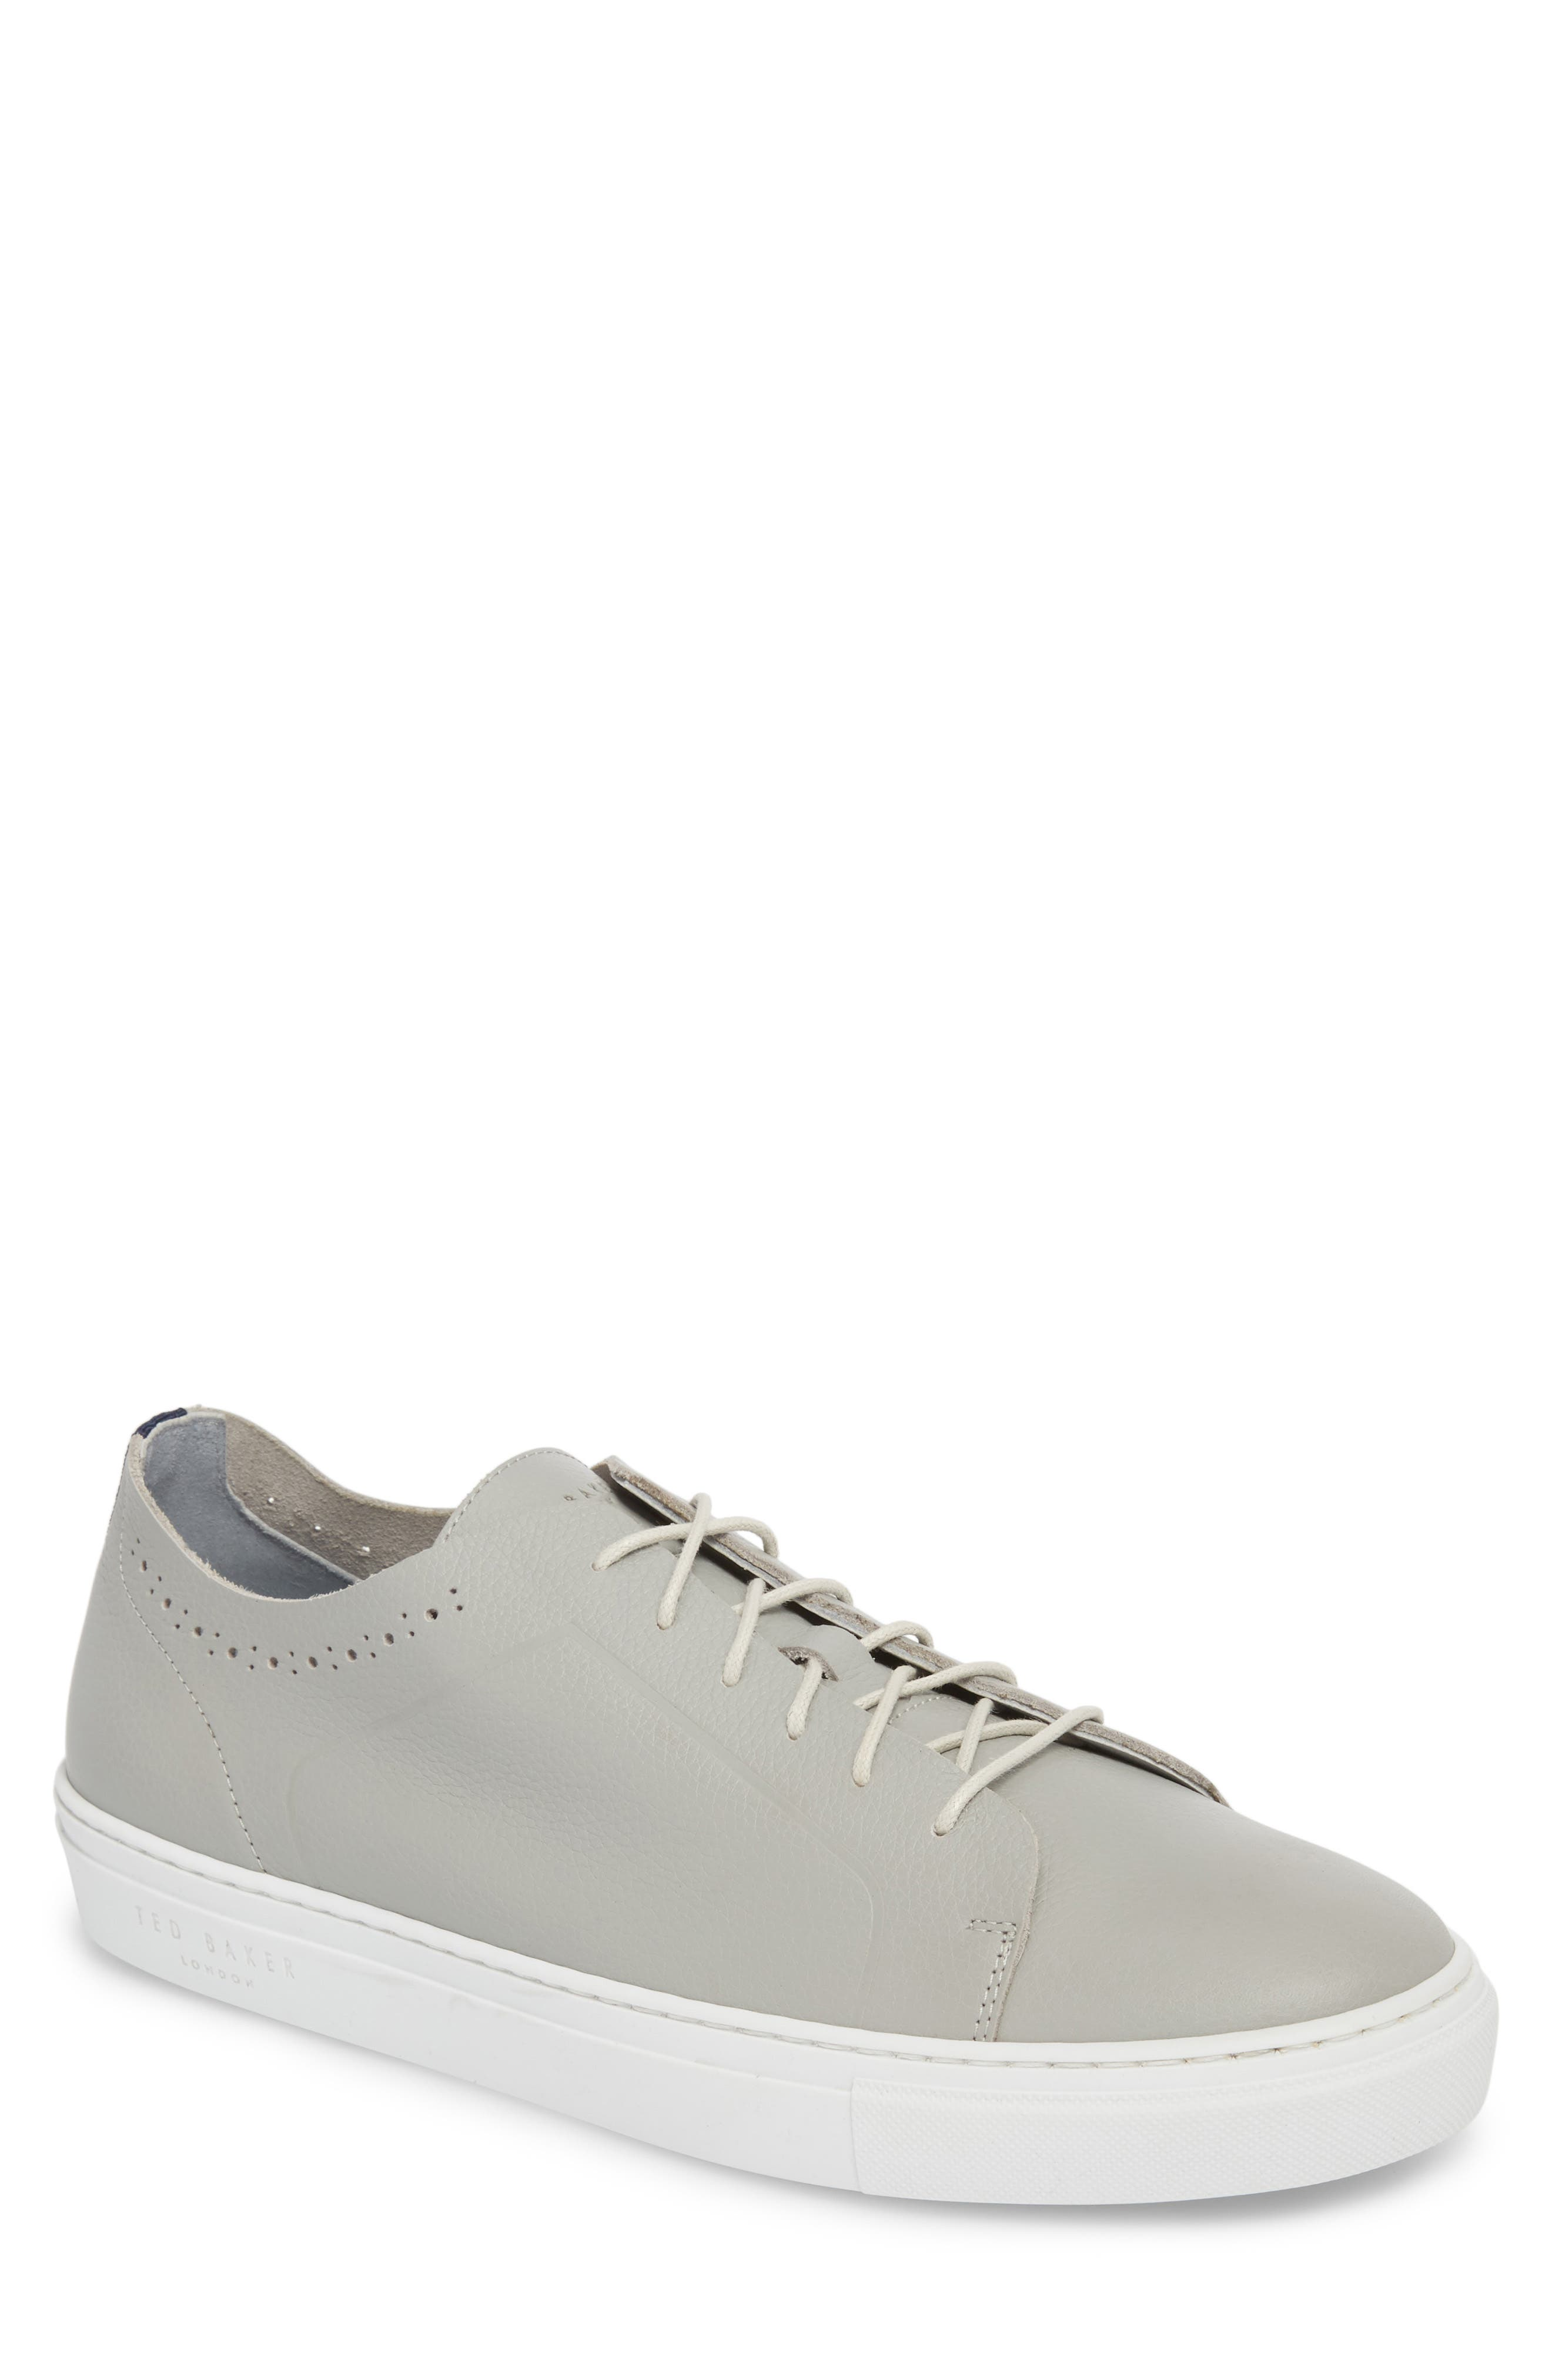 Nowull Brogued Sneaker,                         Main,                         color, LIGHT GREY LEATHER